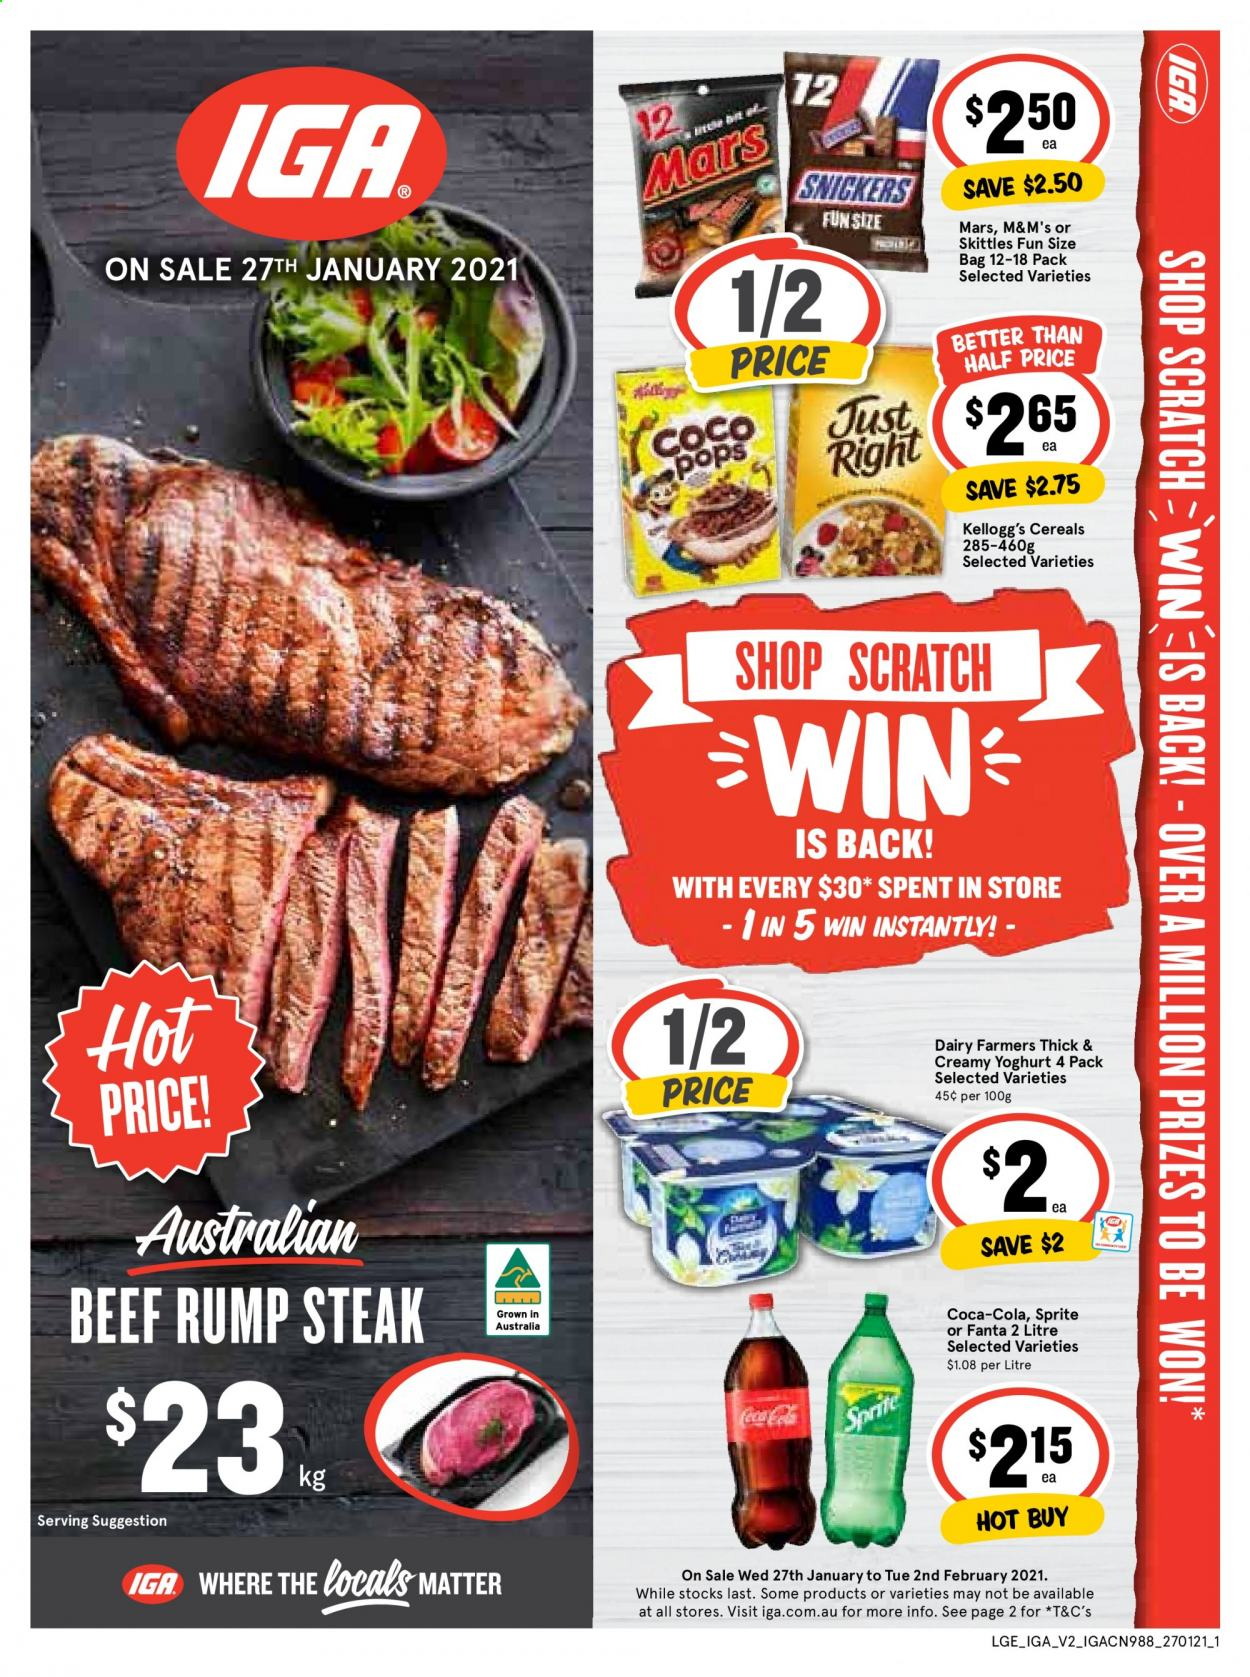 IGA Catalogue - 27.1.2021 - 2.2.2021 - Sales products - yoghurt, Snickers, Mars, M&M's, cereals, Coca-Cola, Sprite, Fanta, beef meat, steak, bag. Page 1.